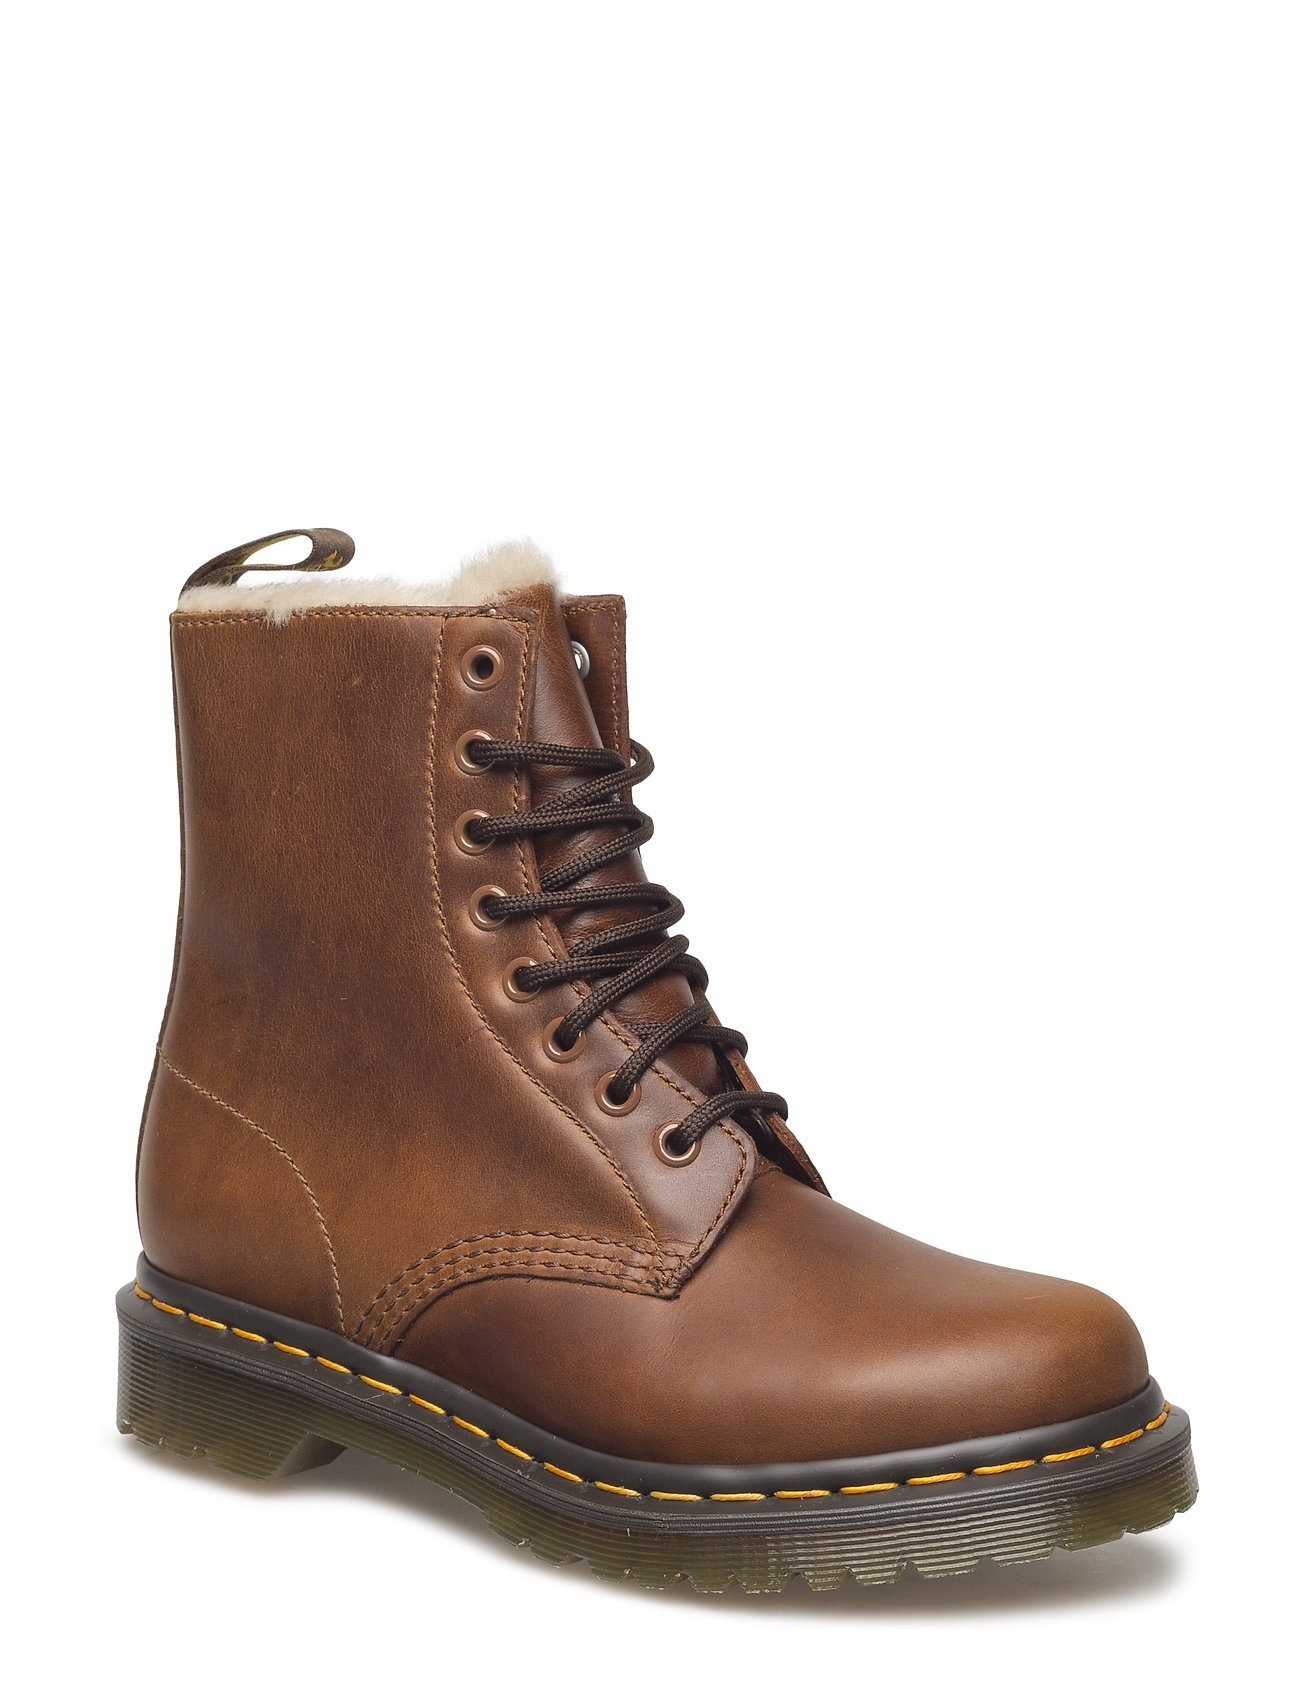 Image of 1460 Serena Butterscotch Orleans Shoes Boots Ankle Boots Ankle Boot - Flat Brun Dr. Martens (3461975561)